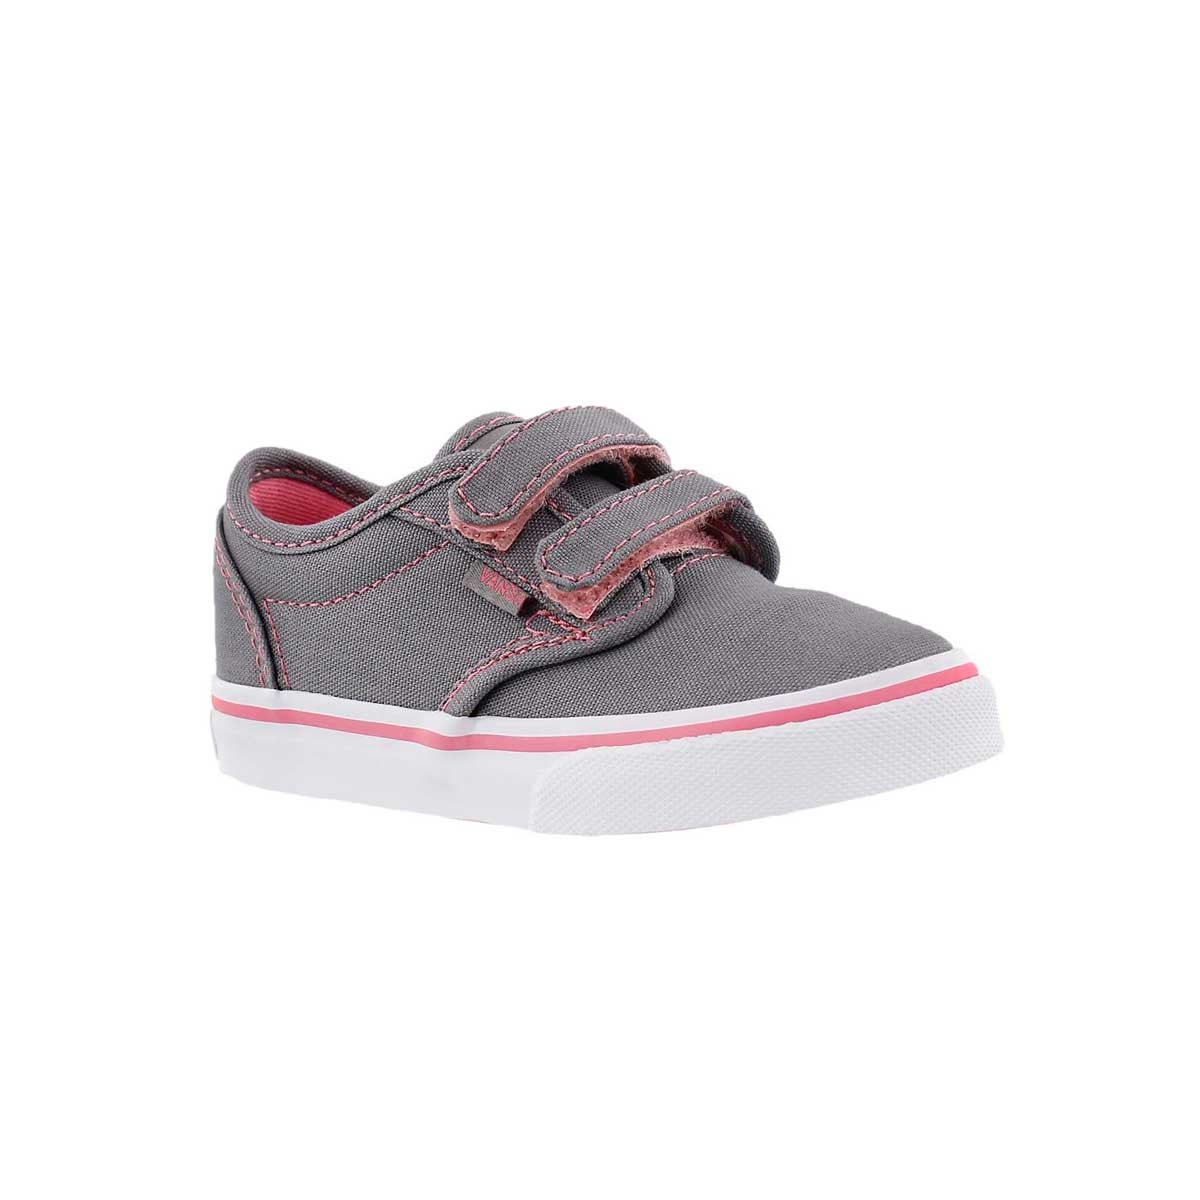 Infants' ATWOOD grey/pink sneakers